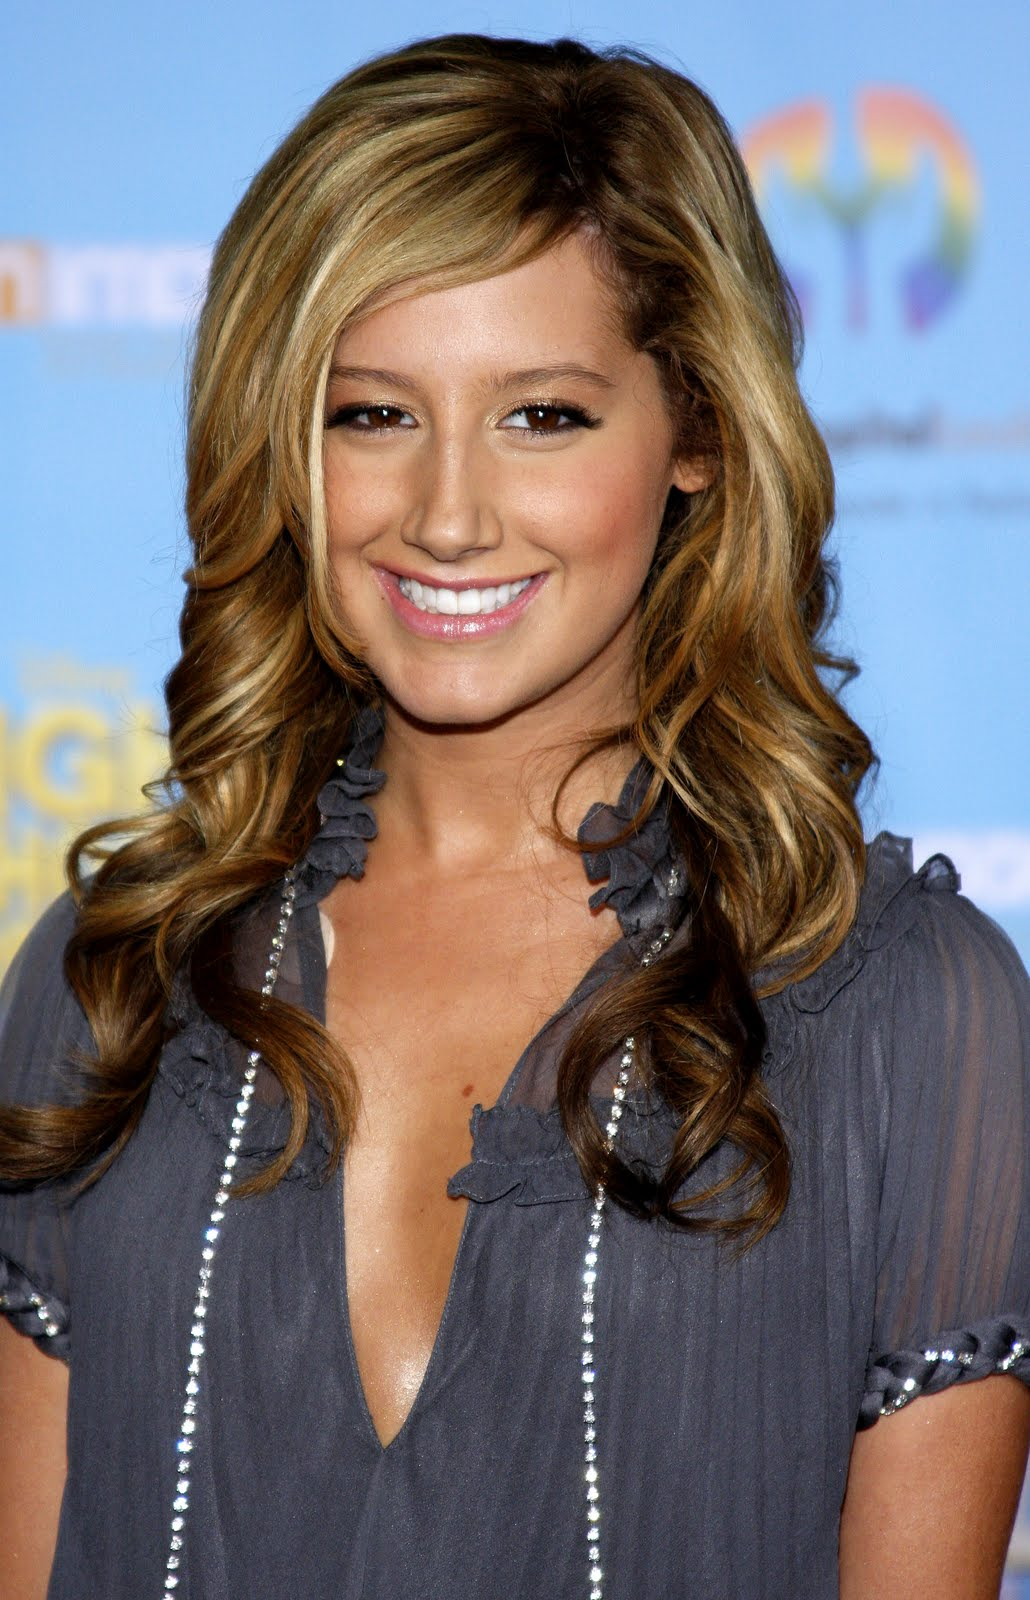 ashley tisdale 2017ashley tisdale 2016, ashley tisdale vk, ashley tisdale gallery, ashley tisdale be good to me, ashley tisdale 2017, ashley tisdale not like that, ashley tisdale crank it up, ashley tisdale кинопоиск, ashley tisdale husband, ashley tisdale official website, ashley tisdale tumblr, ashley tisdale песни, ashley tisdale net worth, ashley tisdale movies, ashley tisdale no princess, ashley tisdale how do you love someone lyrics, ashley tisdale interview, ashley tisdale ex's & oh's скачать, ashley tisdale so much for you, ashley tisdale sprouse twins